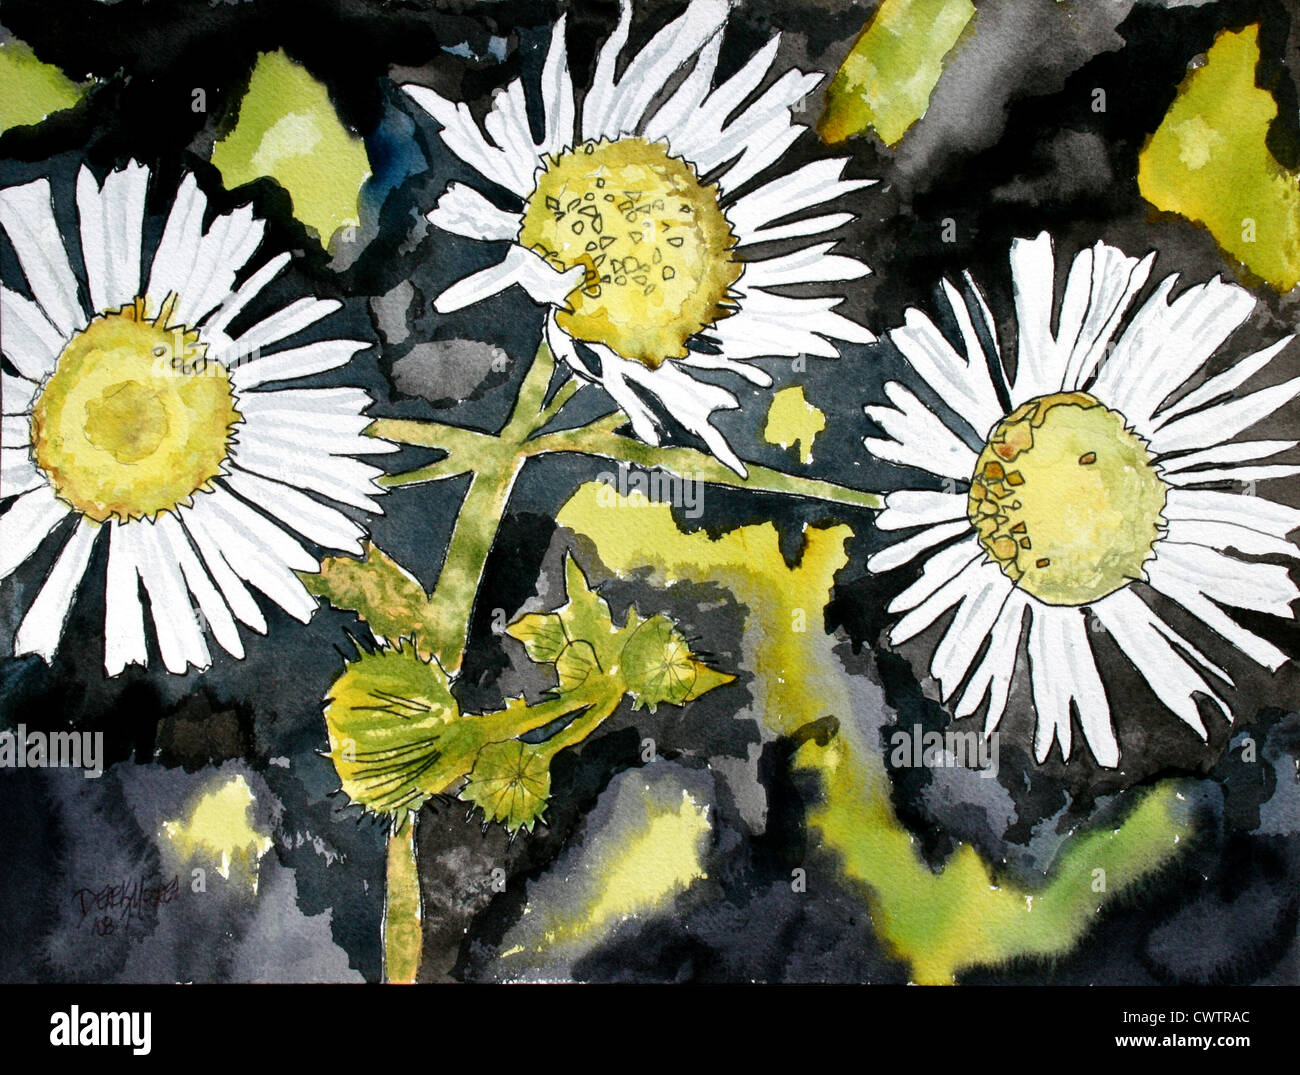 heath aster wildflowers watercolor painting fine modern art impressionistic painting of white and yell flowers with - Stock Image